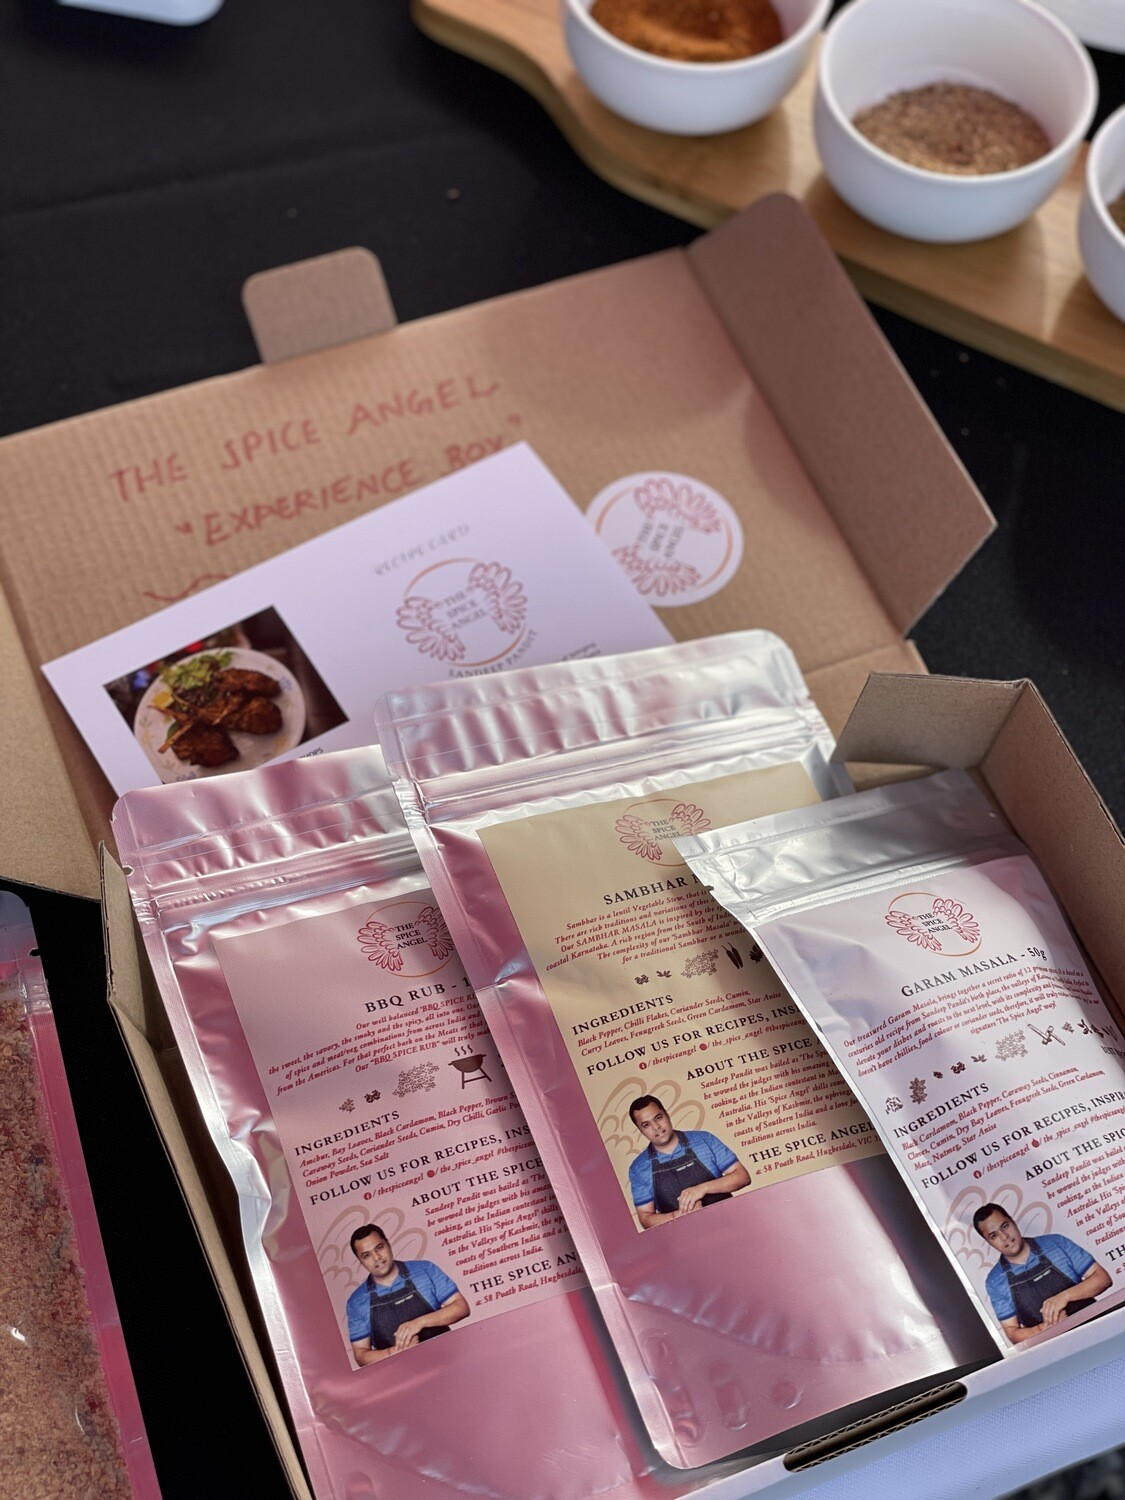 The Spice Angel 'Experience Box'